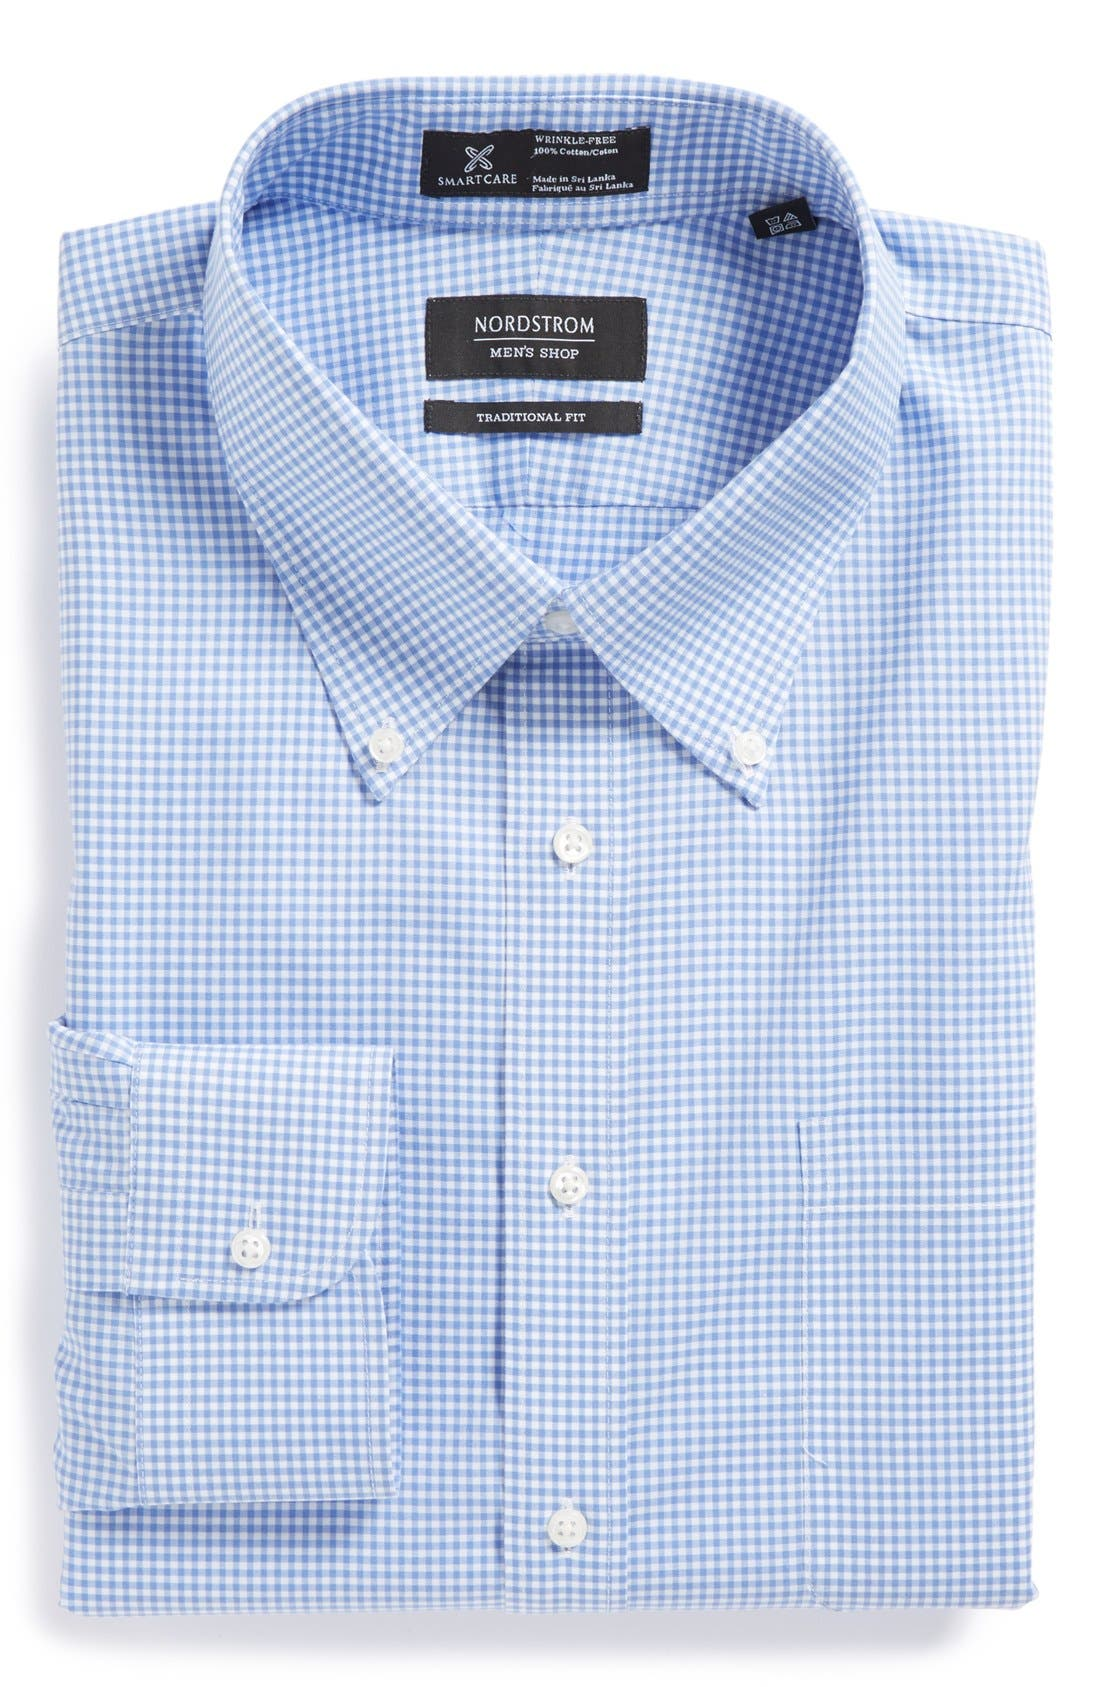 Alternate Image 1 Selected - Nordstrom Men's Shop Smartcare™ Traditional Fit Gingham Dress Shirt